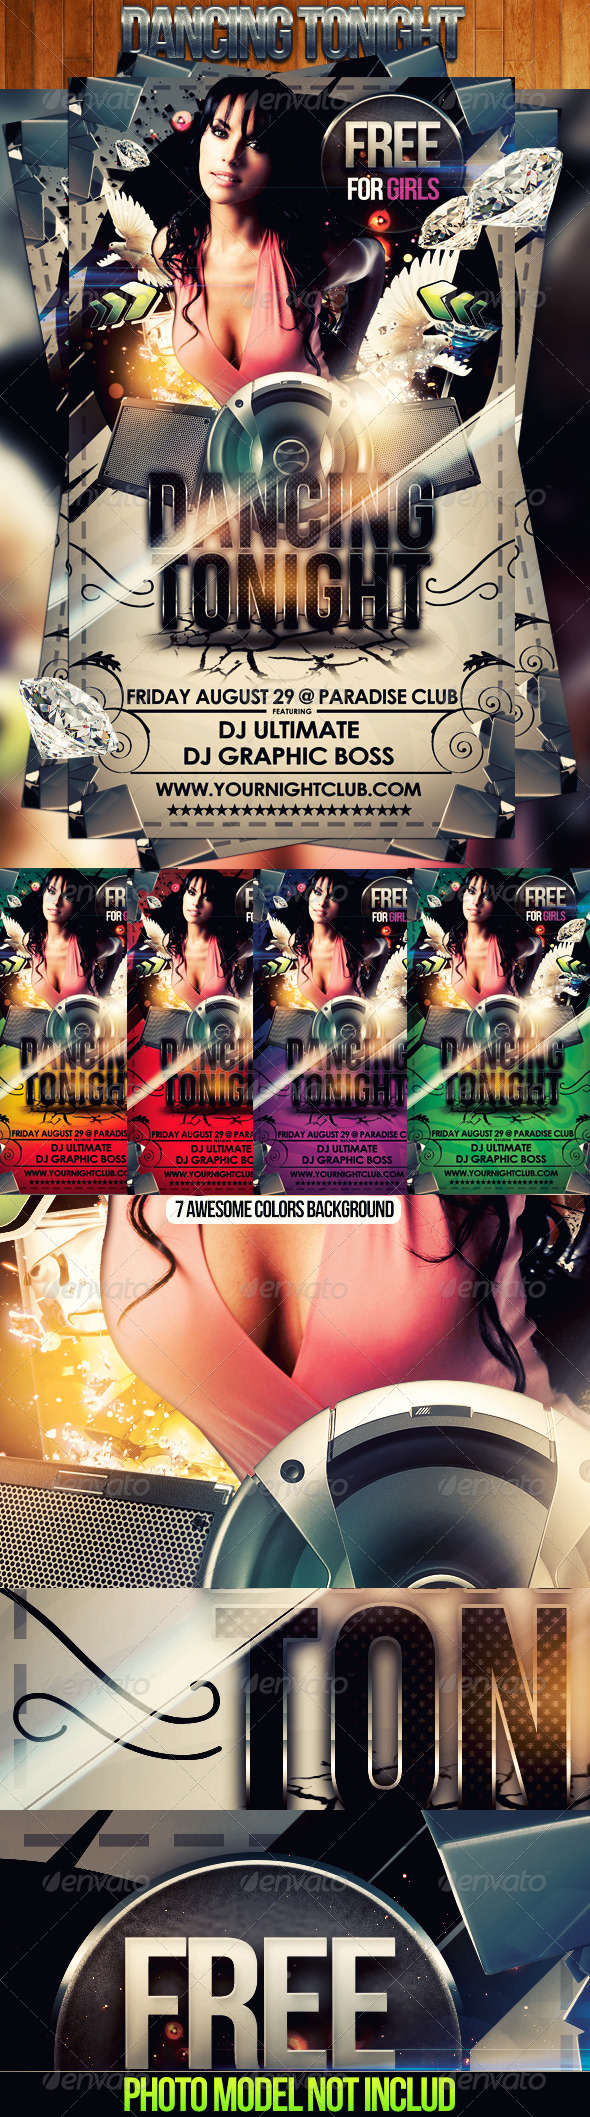 Dancing Tonight Flyer - Flyers Print Templates